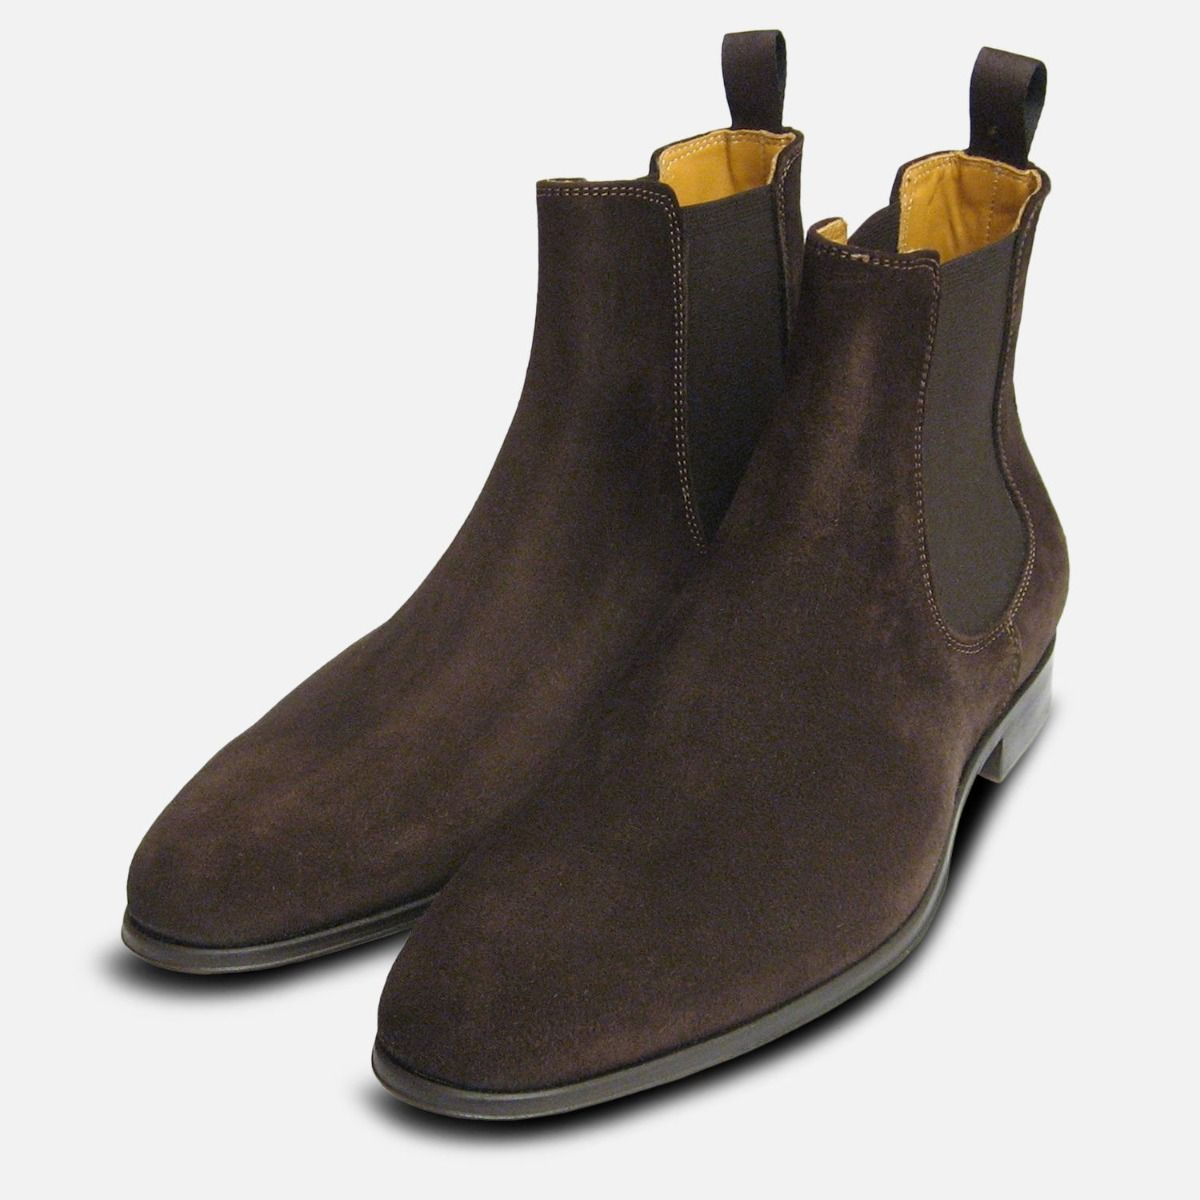 Brown Suede Chelsea Boots for Men